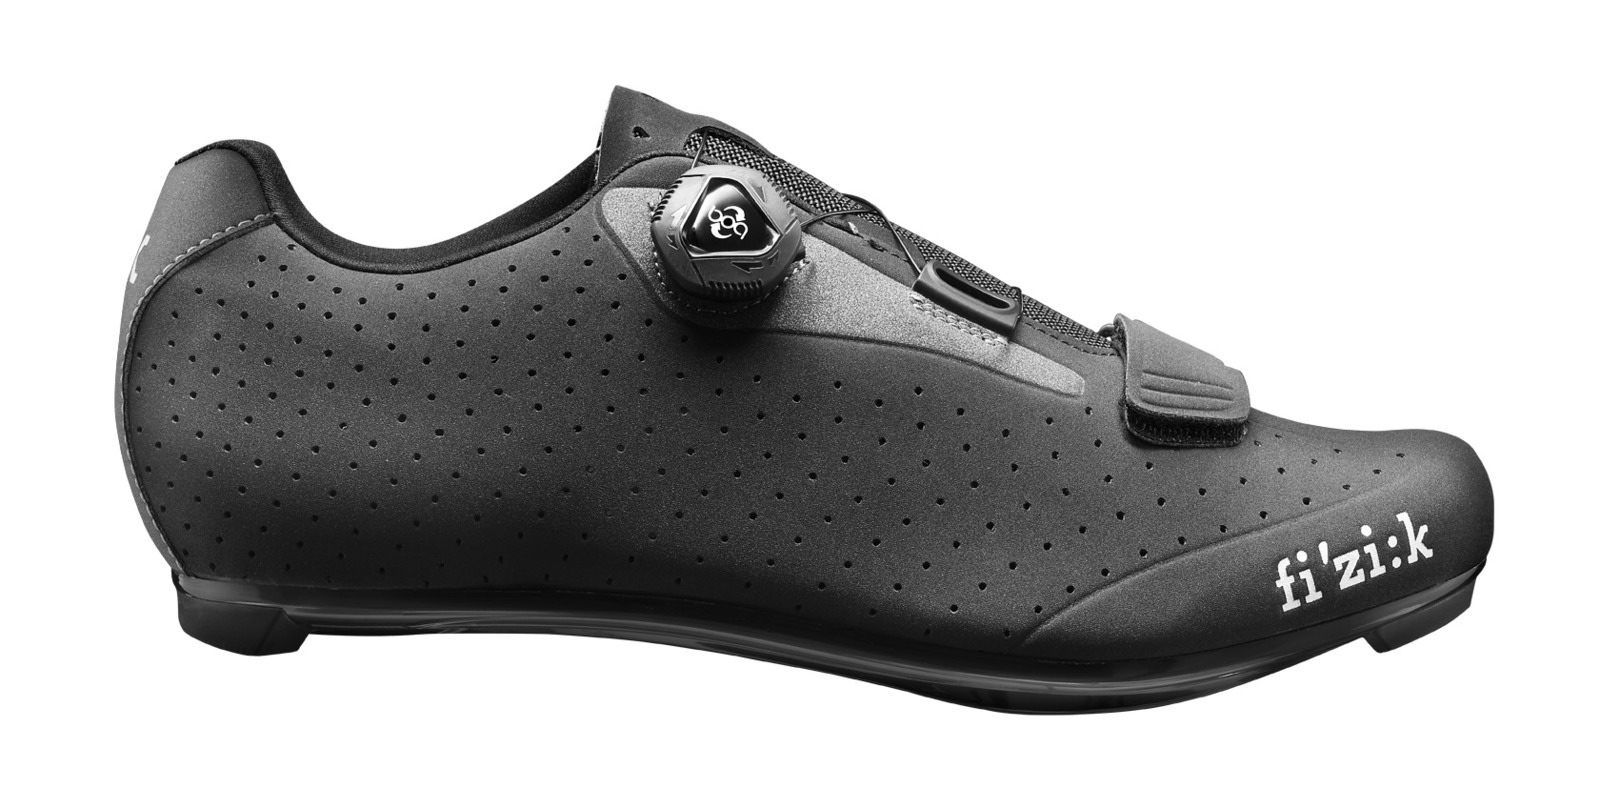 Fizik R5 UOMO BOA Road Cycling Shoes Black/Dark Gray 40